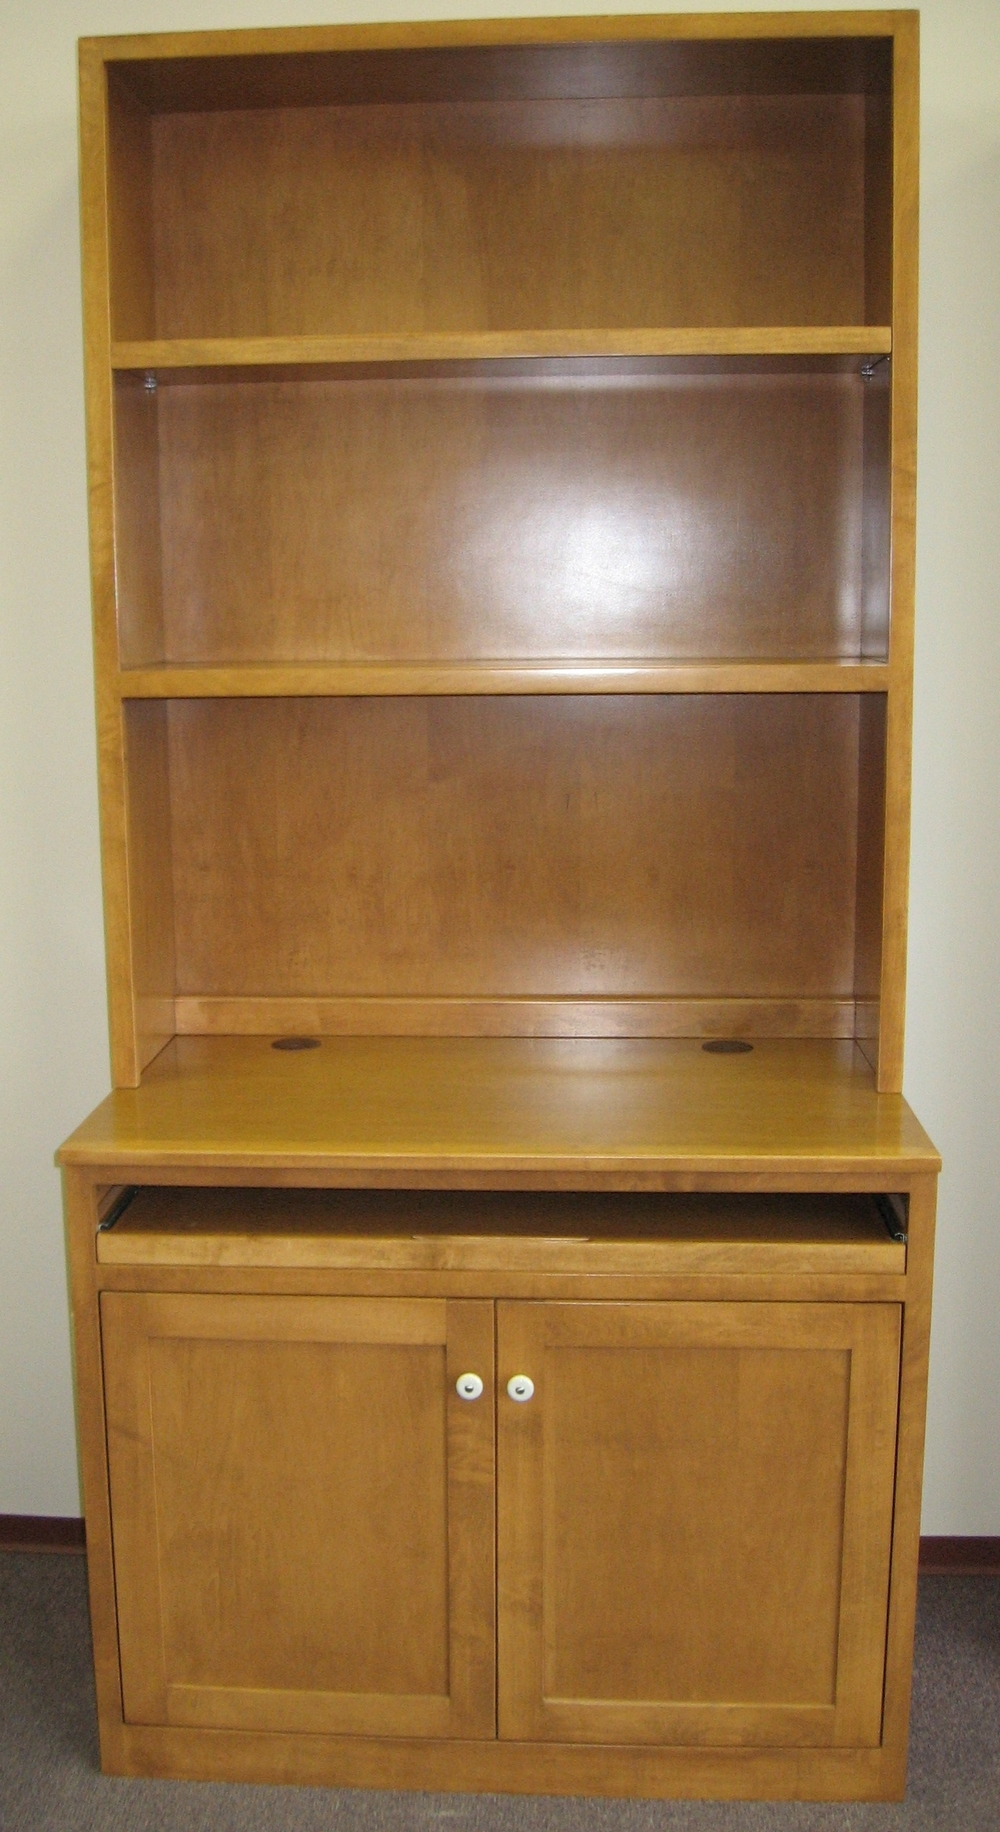 maple-slide-out-computer-printer-cabinet-with-open-shelves.JPG